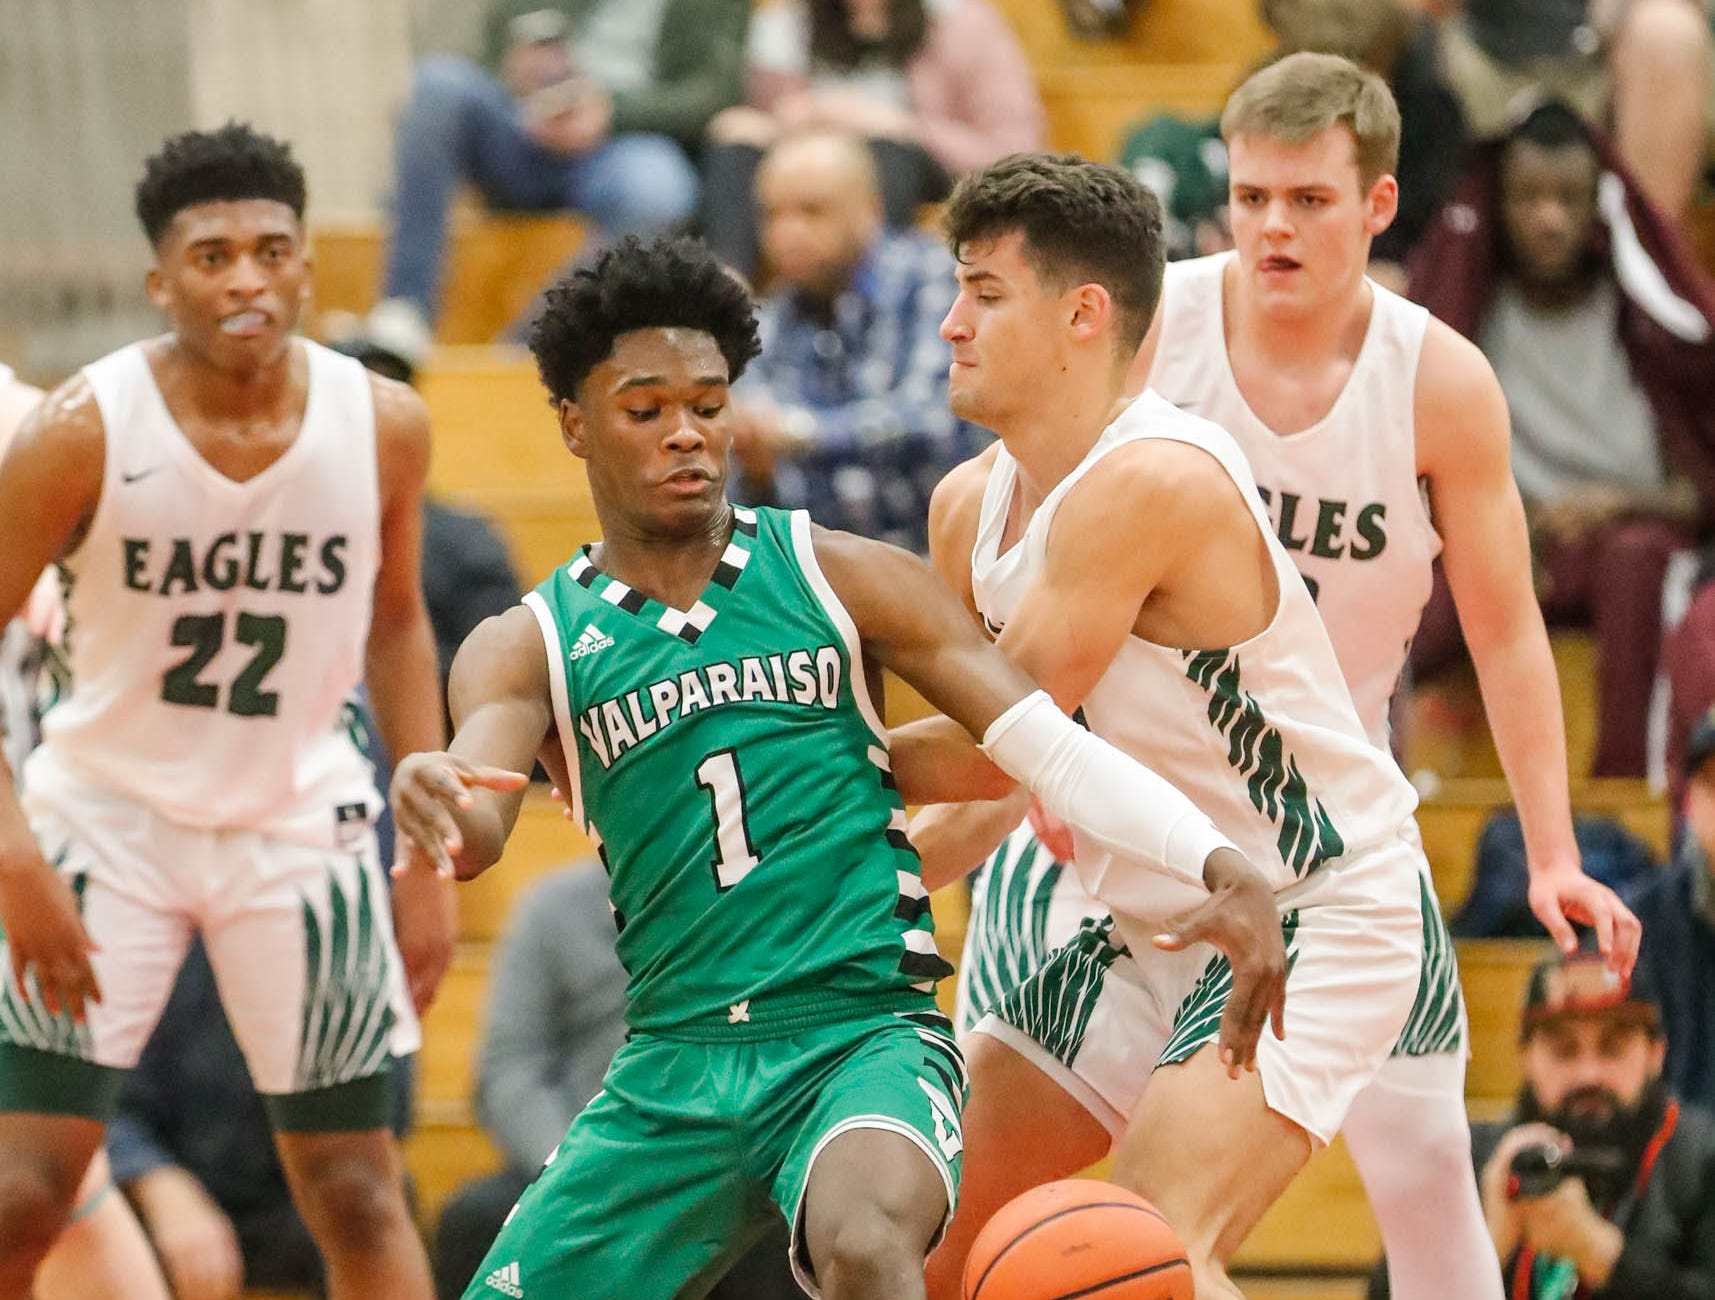 Valparaiso High School's Brandon Newman (1) chases a loose ball shoots for the hoop during a game between Zionsville Community High School, and Valparaiso High School, in the 4th Annual Manuel Extravaganza Showcase held at Emmerich Manuel High School in Indianapolis on Saturday, Dec. 22, 2018.